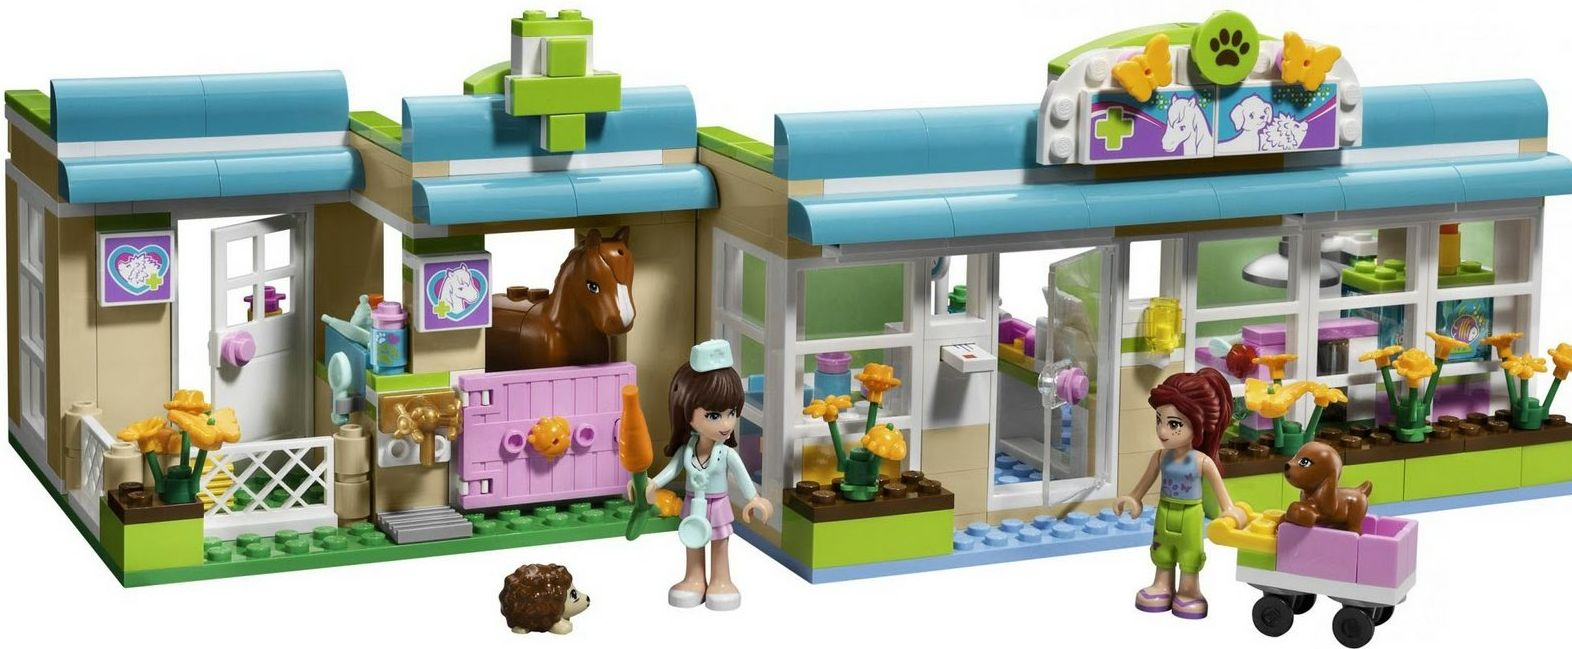 Lego Friends 3188 Heartlake Vet  Lego Friends 3188   Heartlake Vet